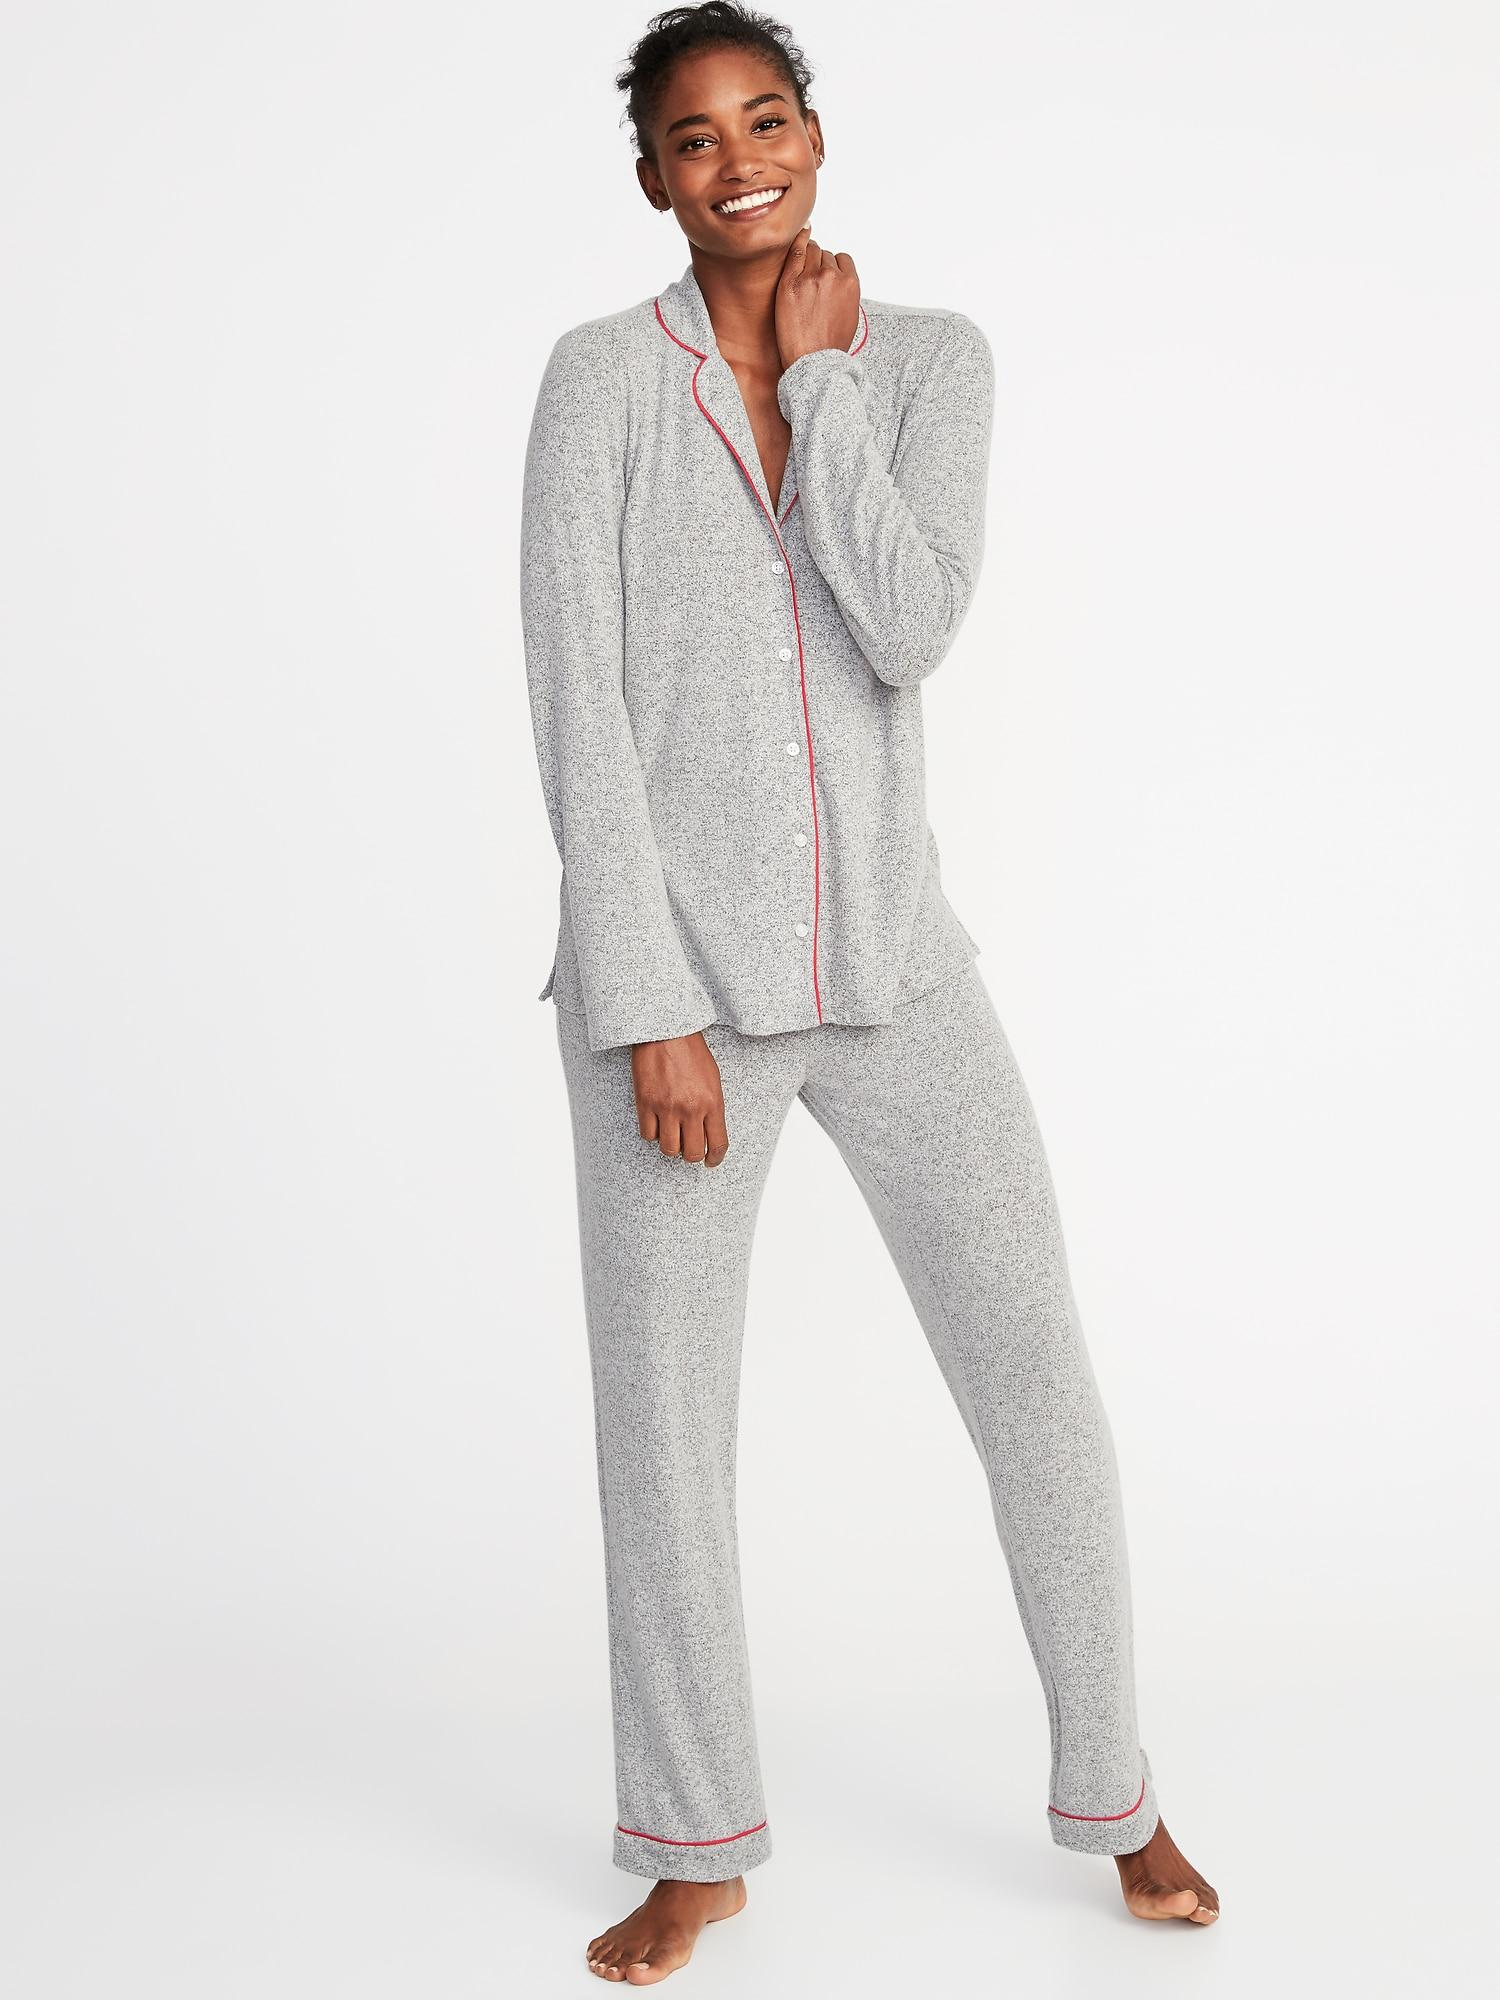 79a2ac2cec7 Lyst - Old Navy Plush-knit Sleep Set in Gray